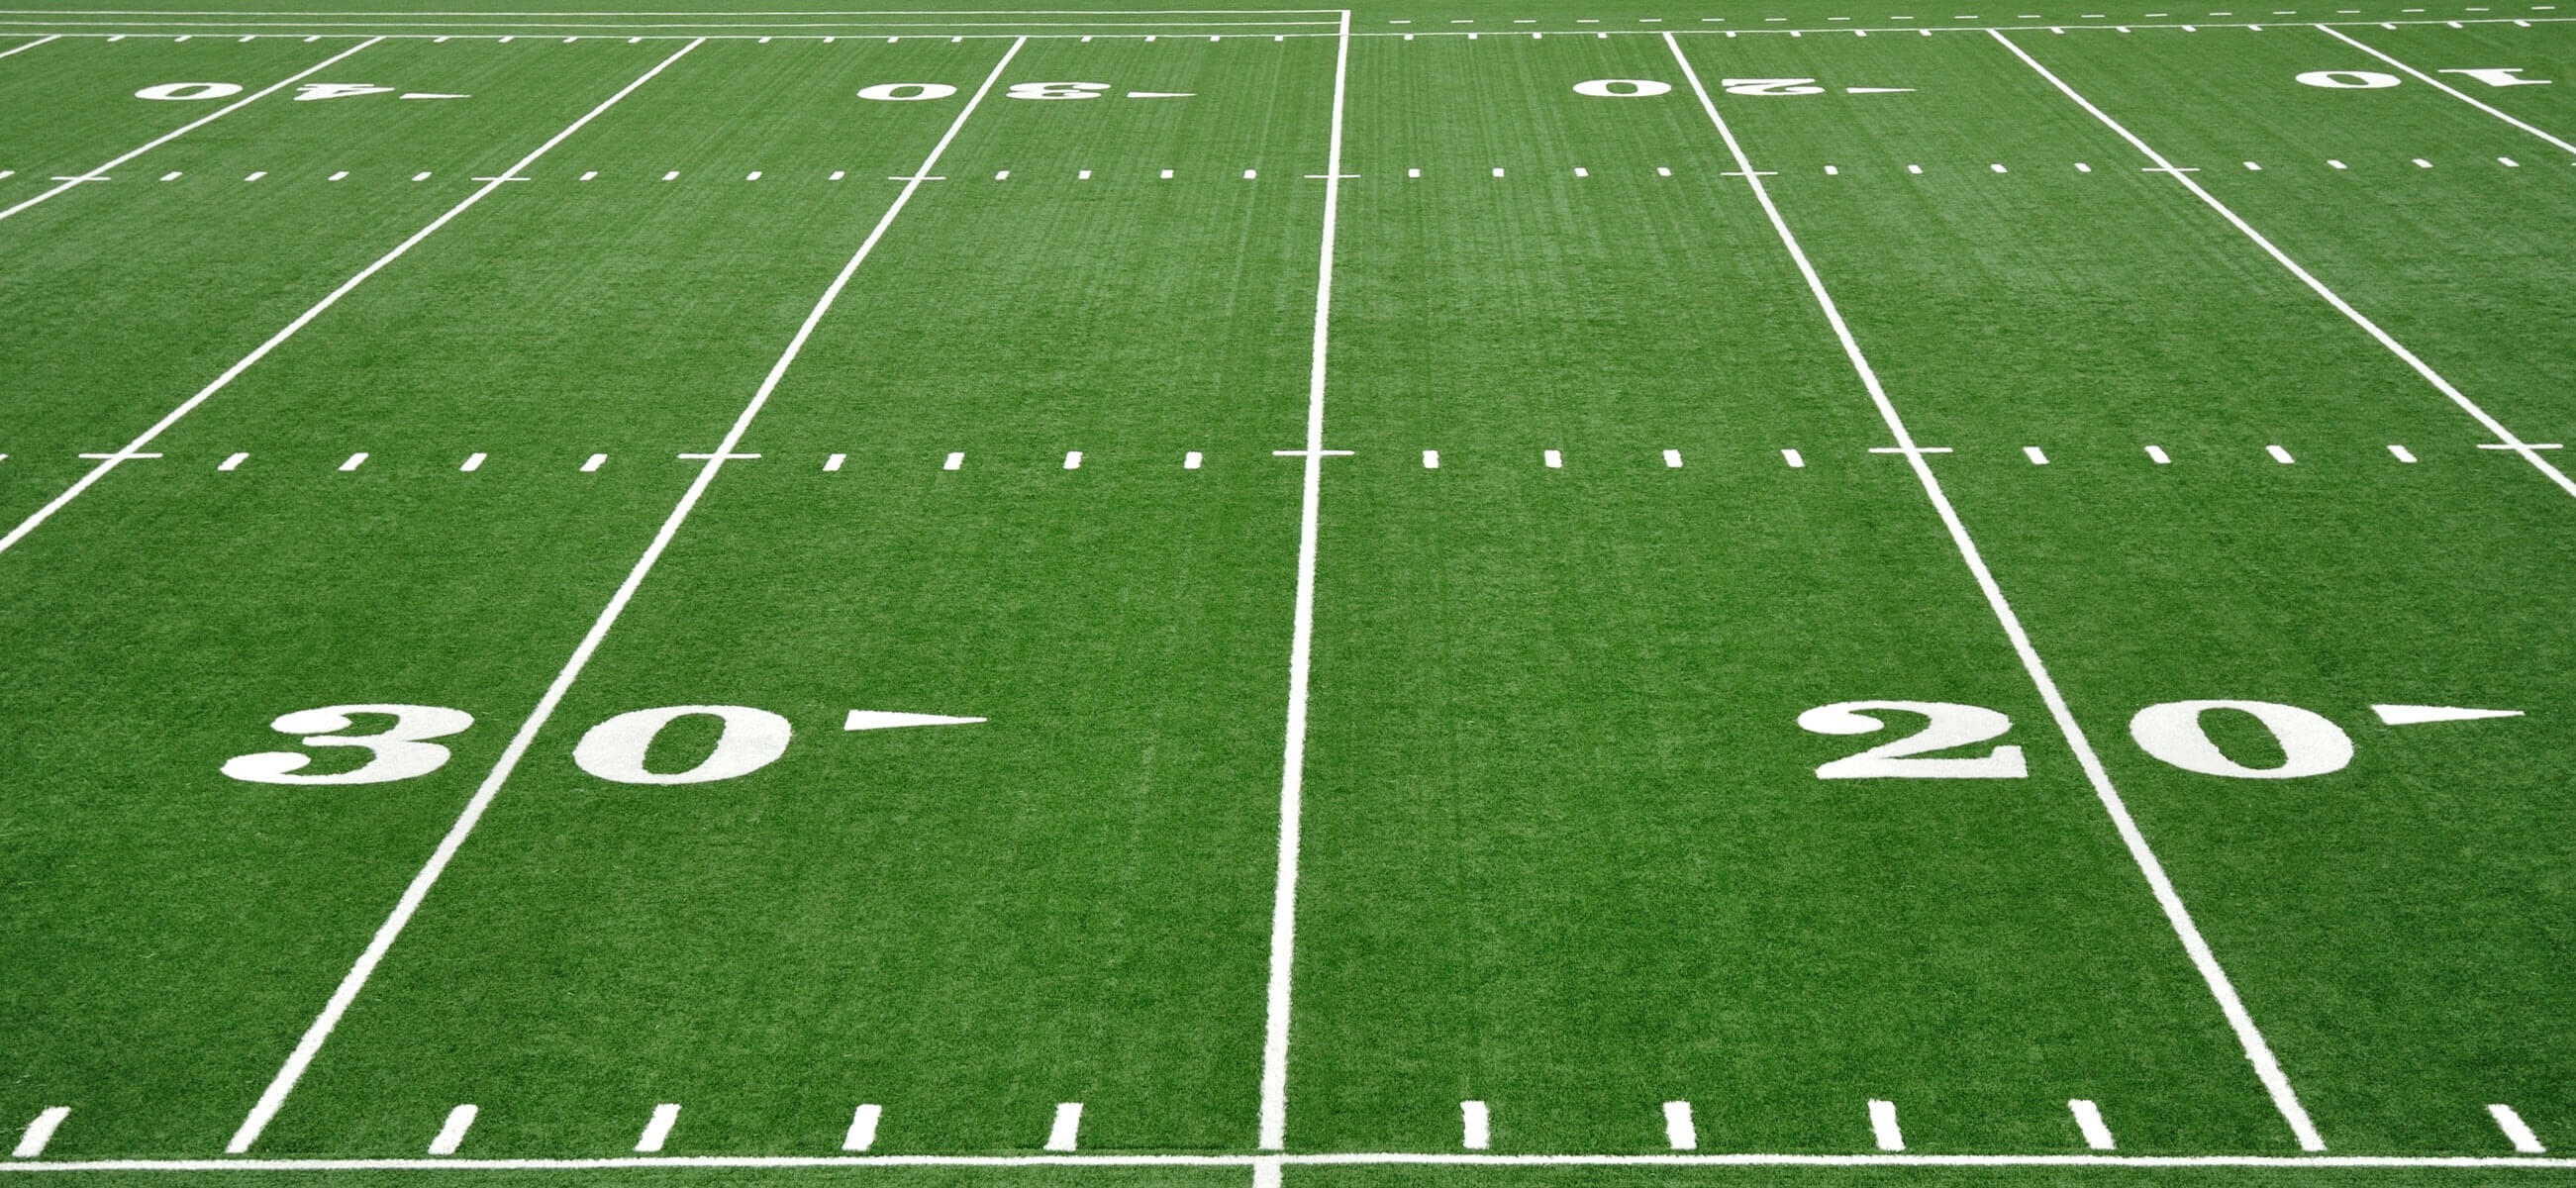 Football Field Blank Template - Imgflip Inside Blank Football Field Template